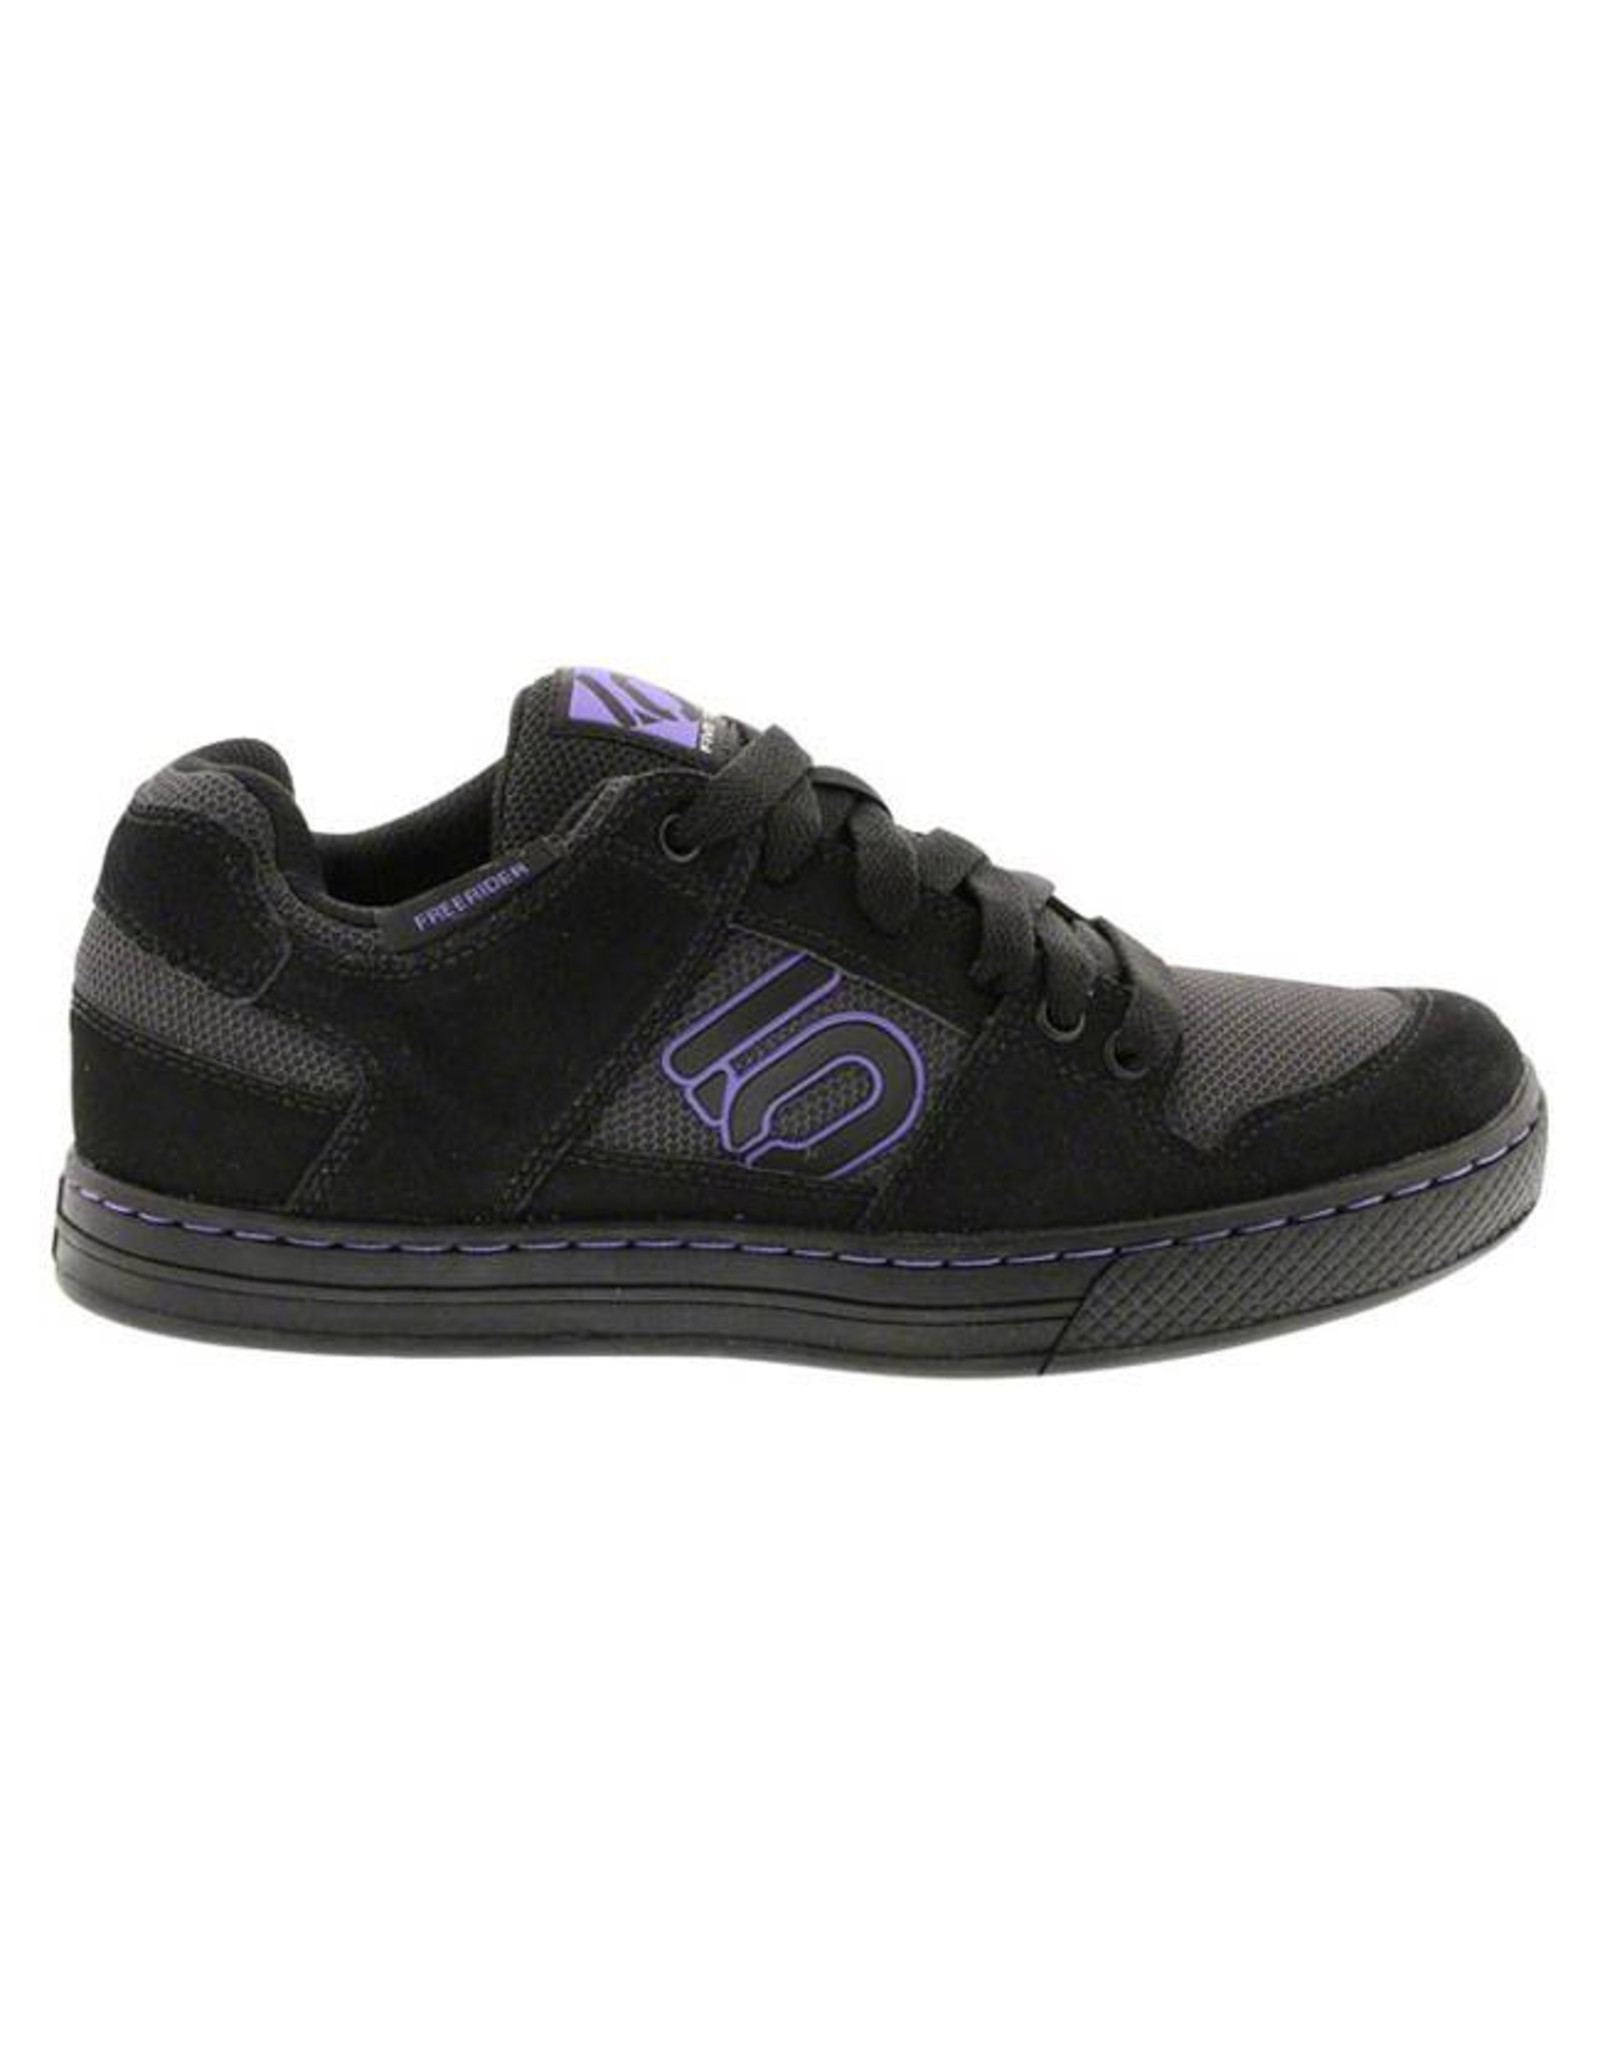 Five Ten Five Ten Freerider Women's Flat Pedal Shoe: Black/Purple 10.5